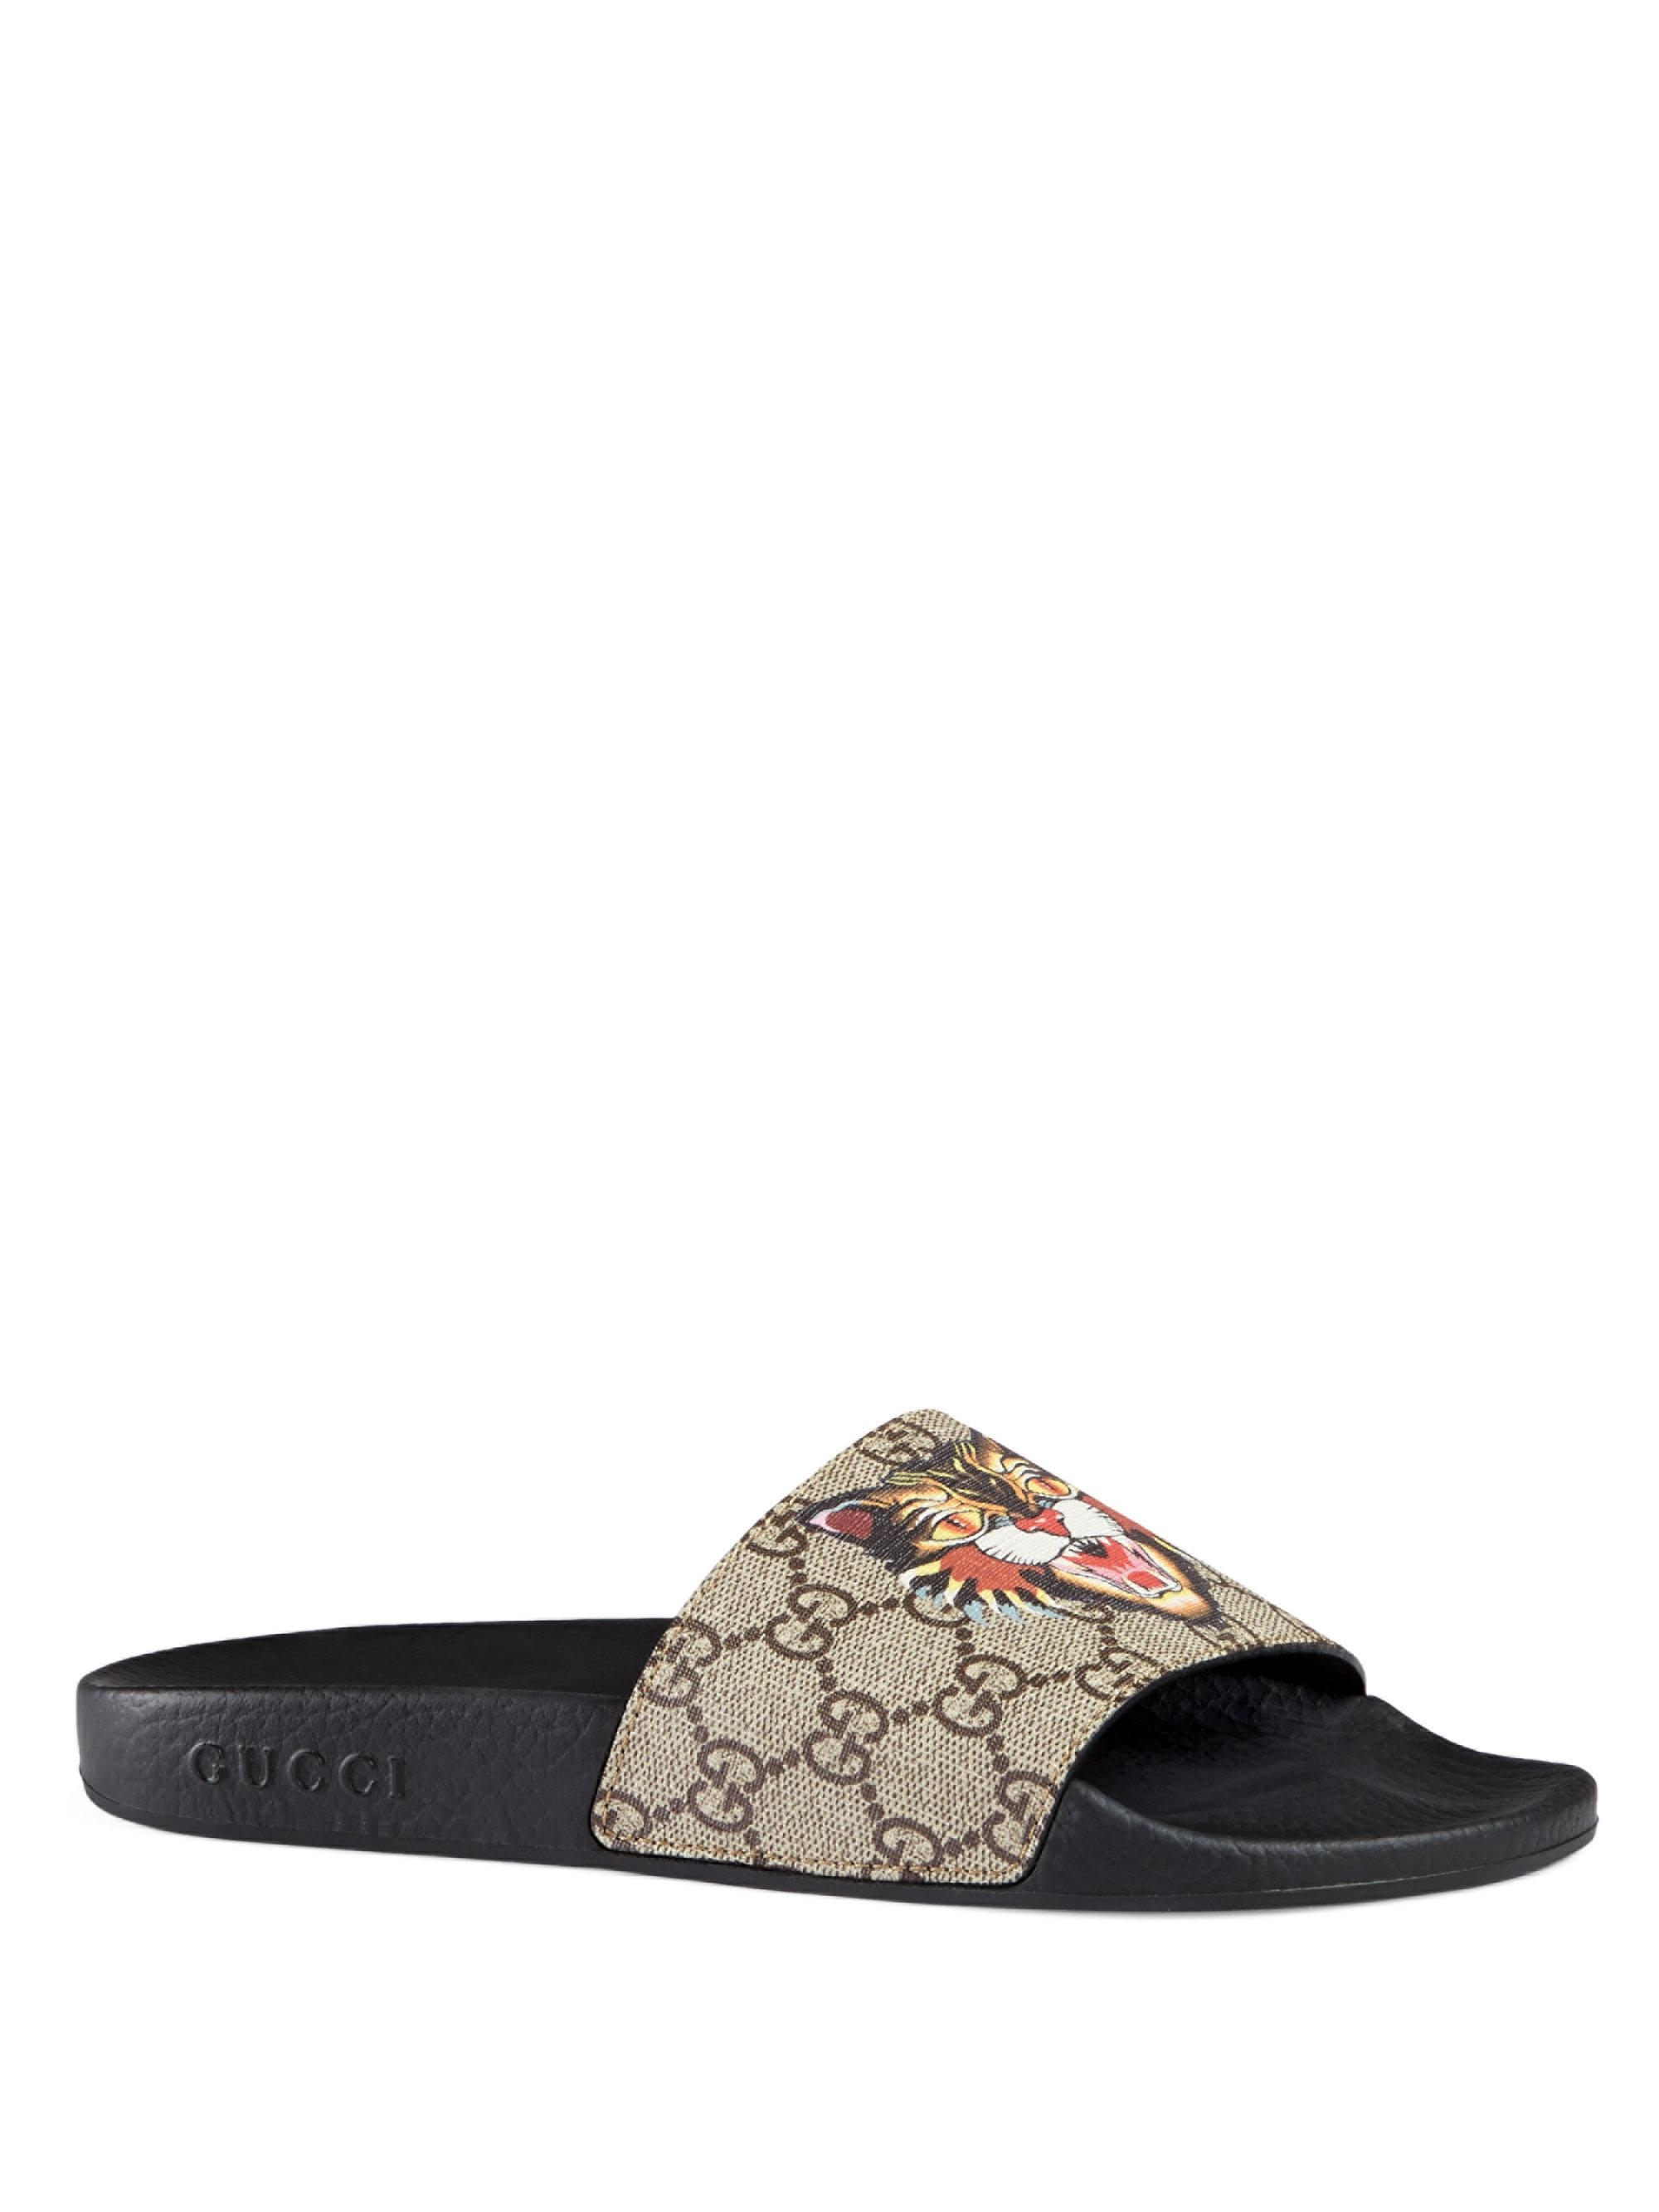 Pursuit Angry Cat Gg Supreme Slides